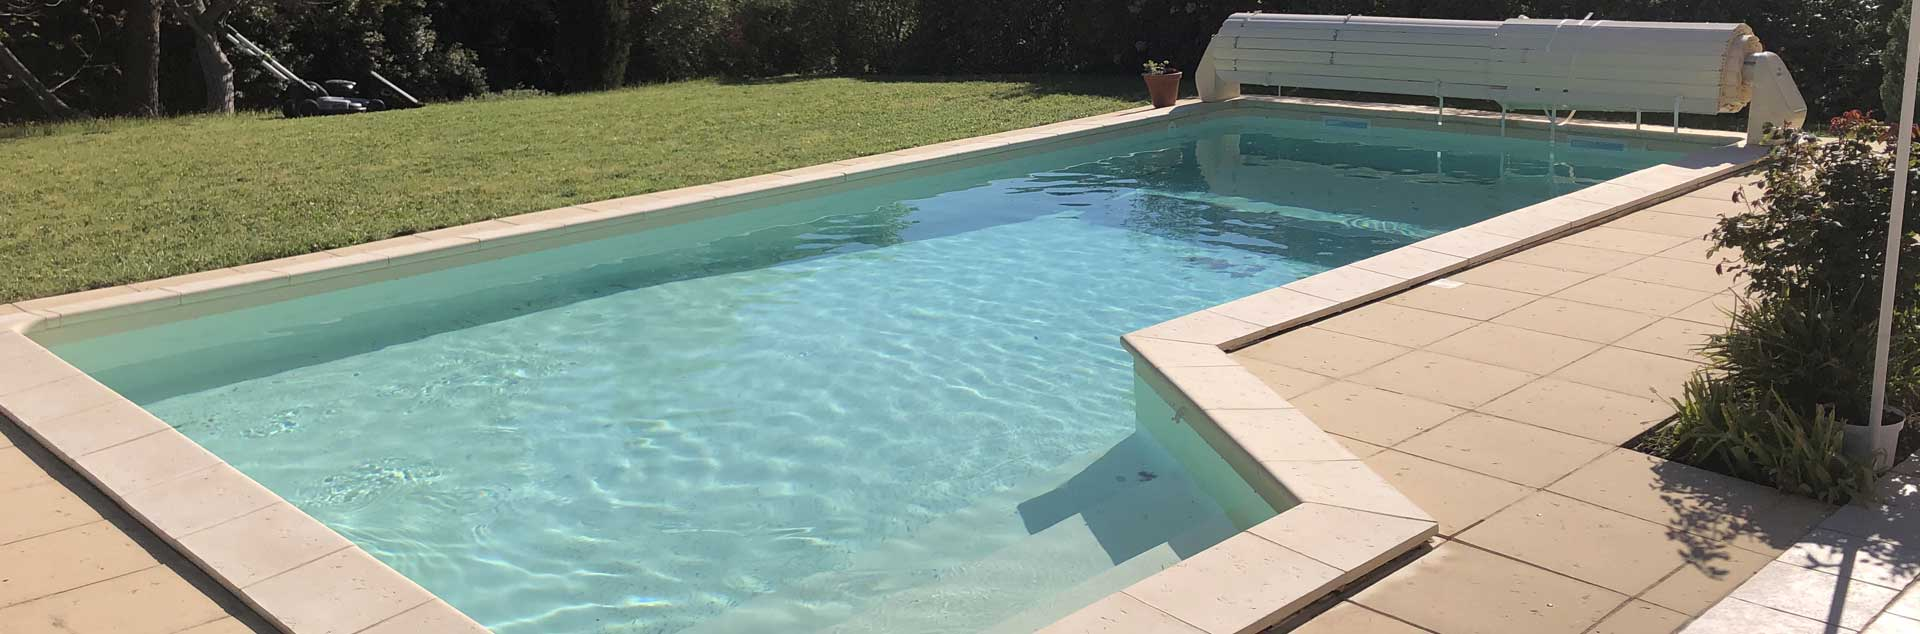 Sp cialiste piscines venasque construction et r novation for Specialiste piscine bois